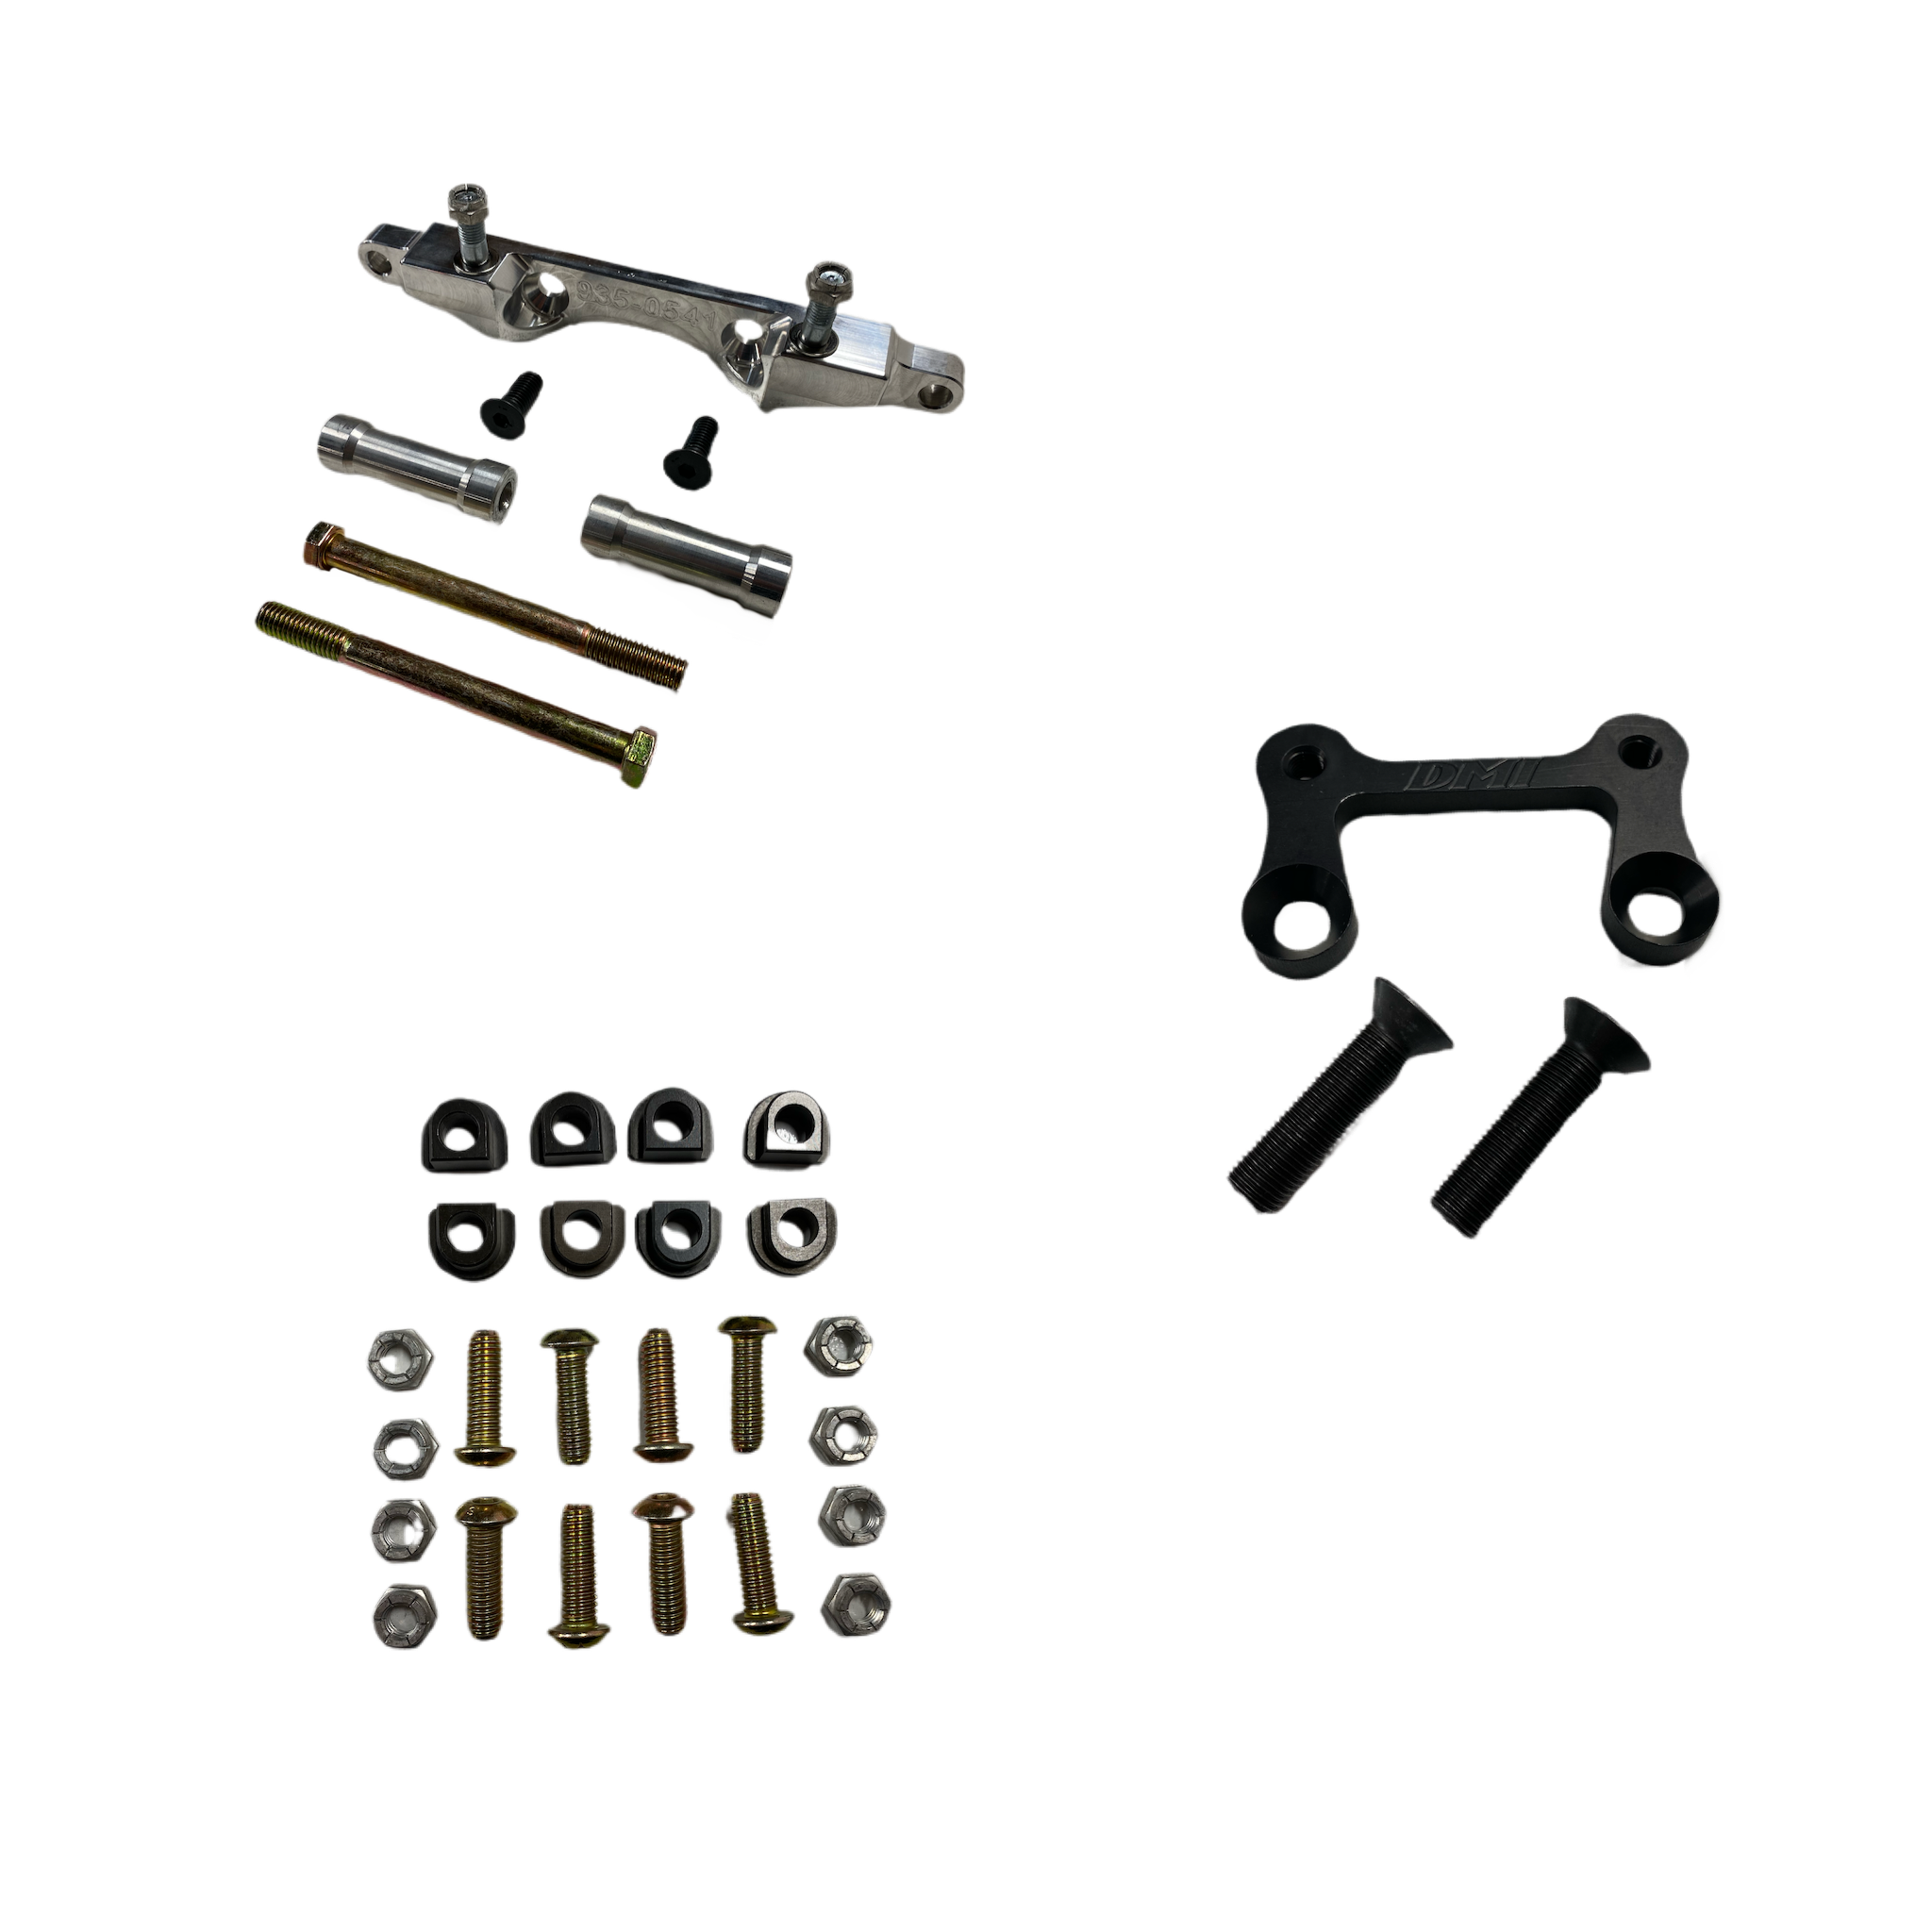 Brake Mounts & Accessories